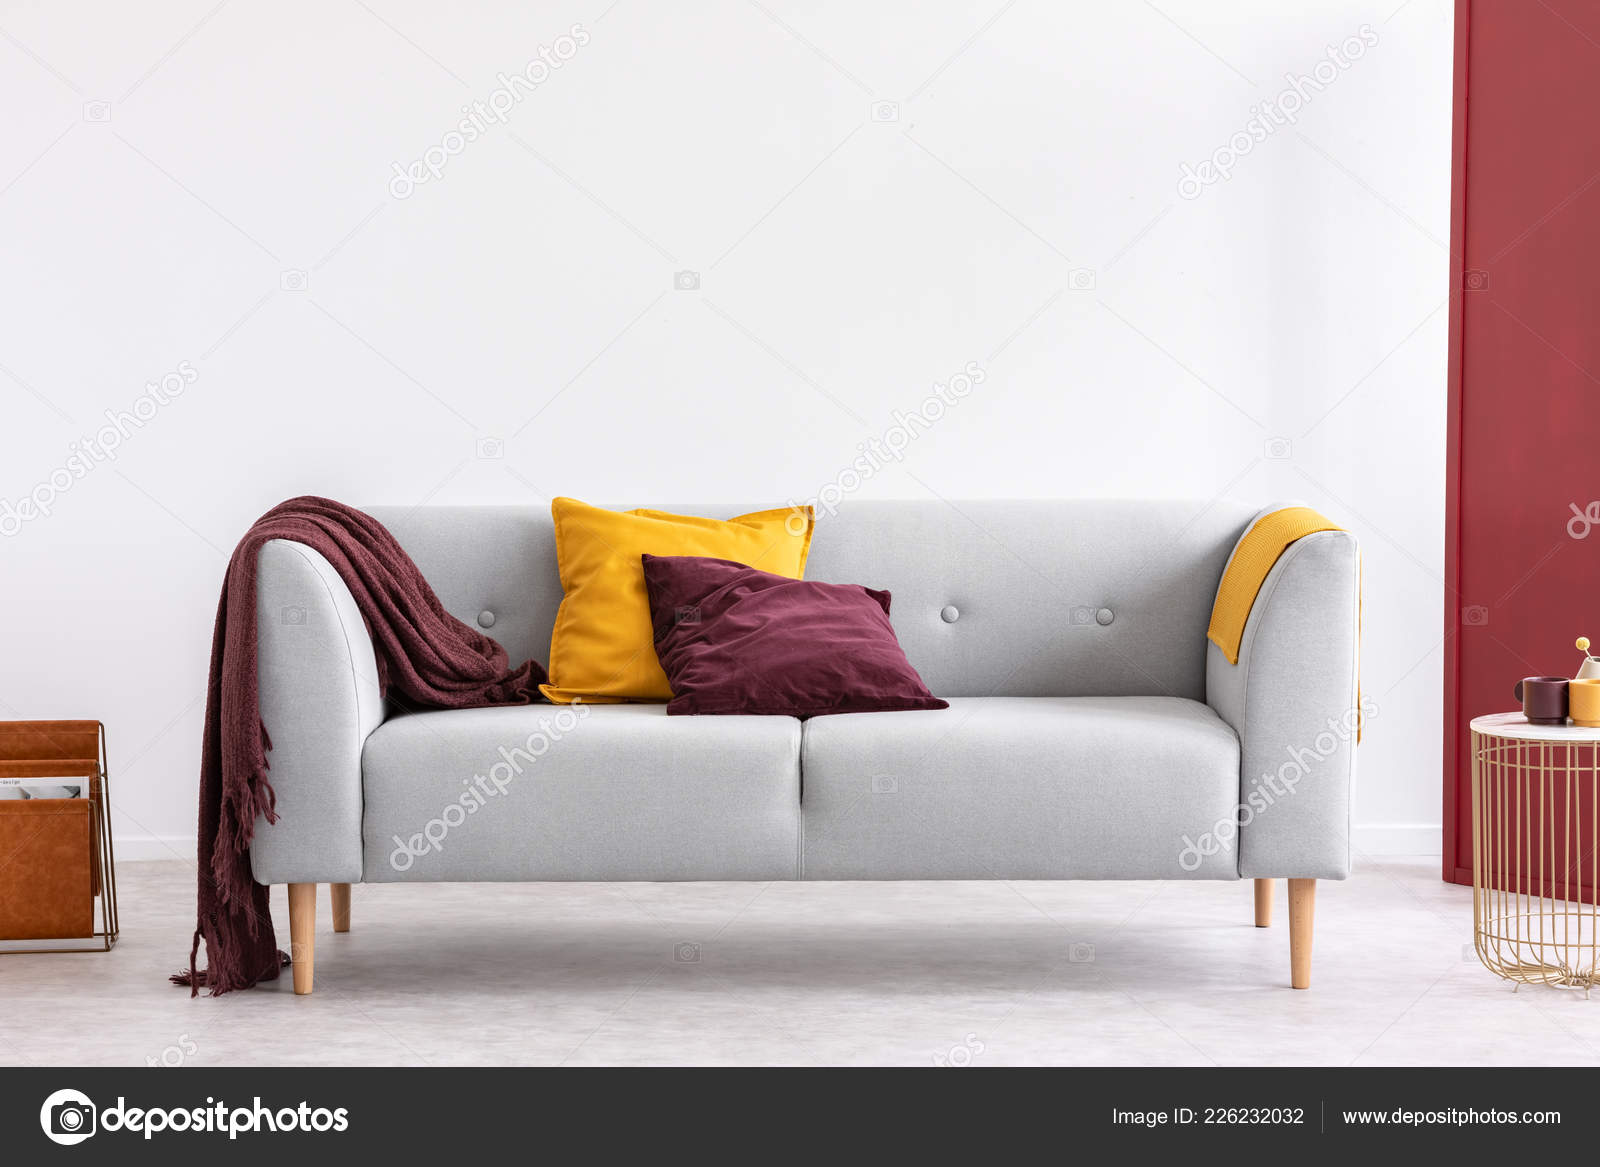 Stupendous Burgundy Pillow Blanket Yellow Pillow Blanket Stylish Grey Bralicious Painted Fabric Chair Ideas Braliciousco